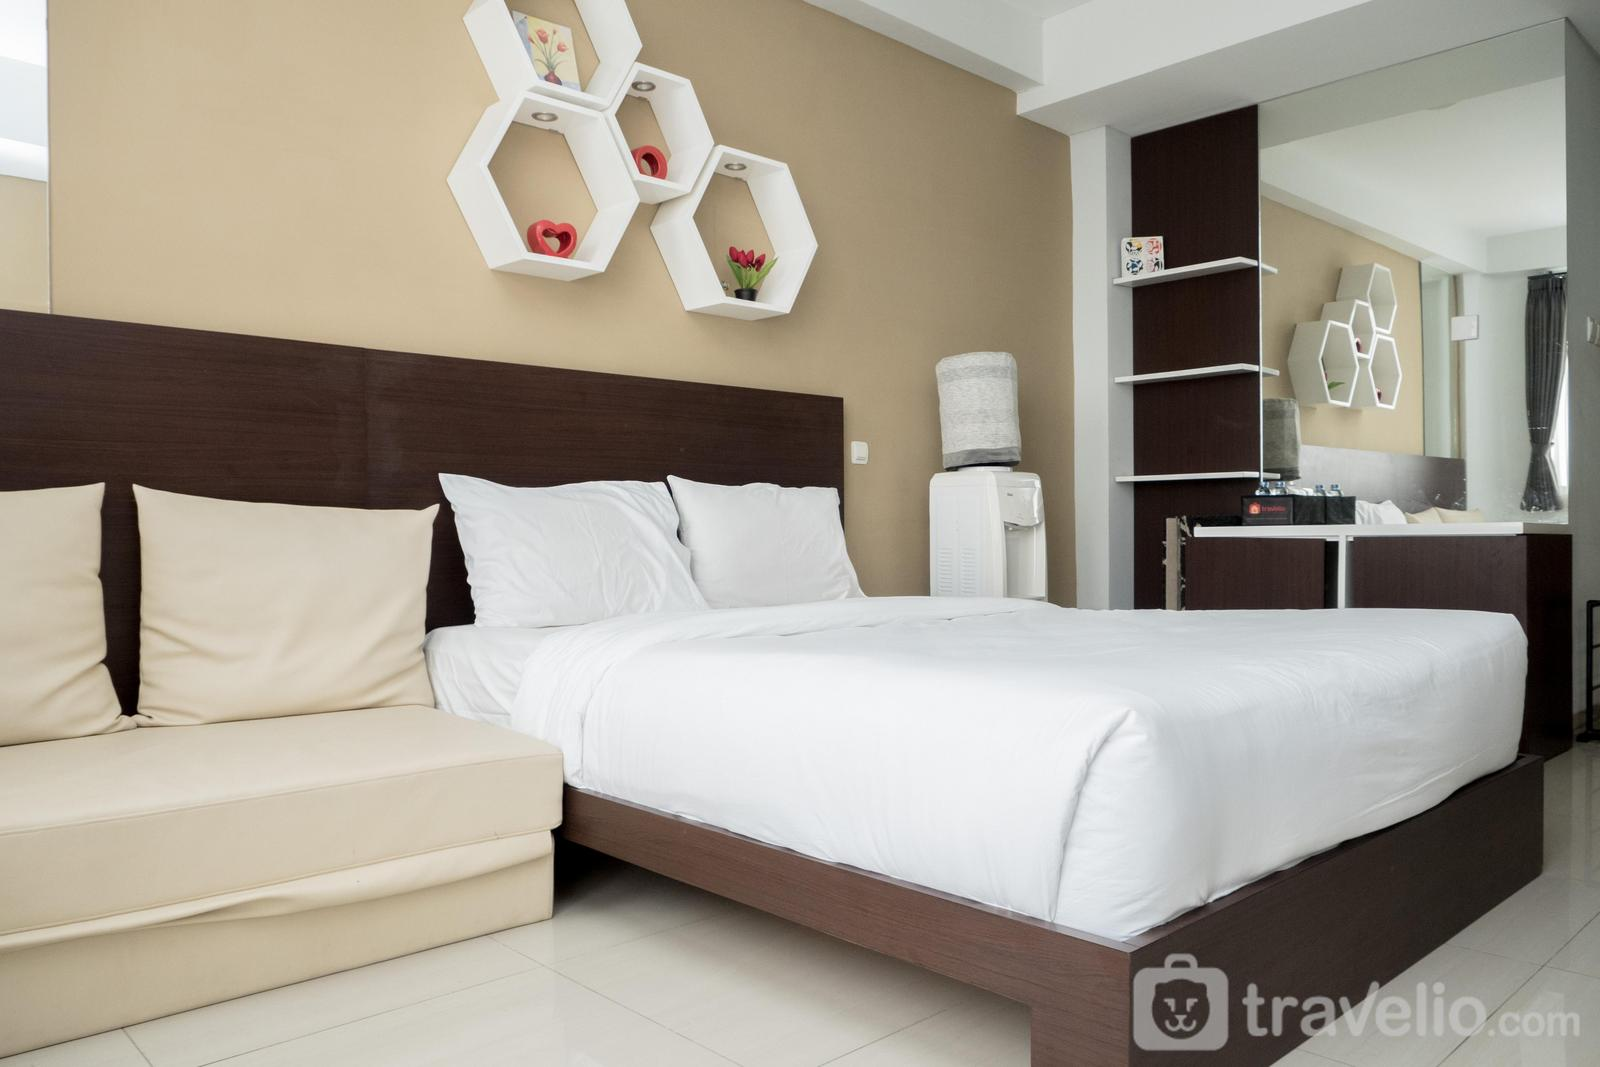 Dago Suites Apartment - Spacious Studio Apartment Dago Suites near ITB By Travelio